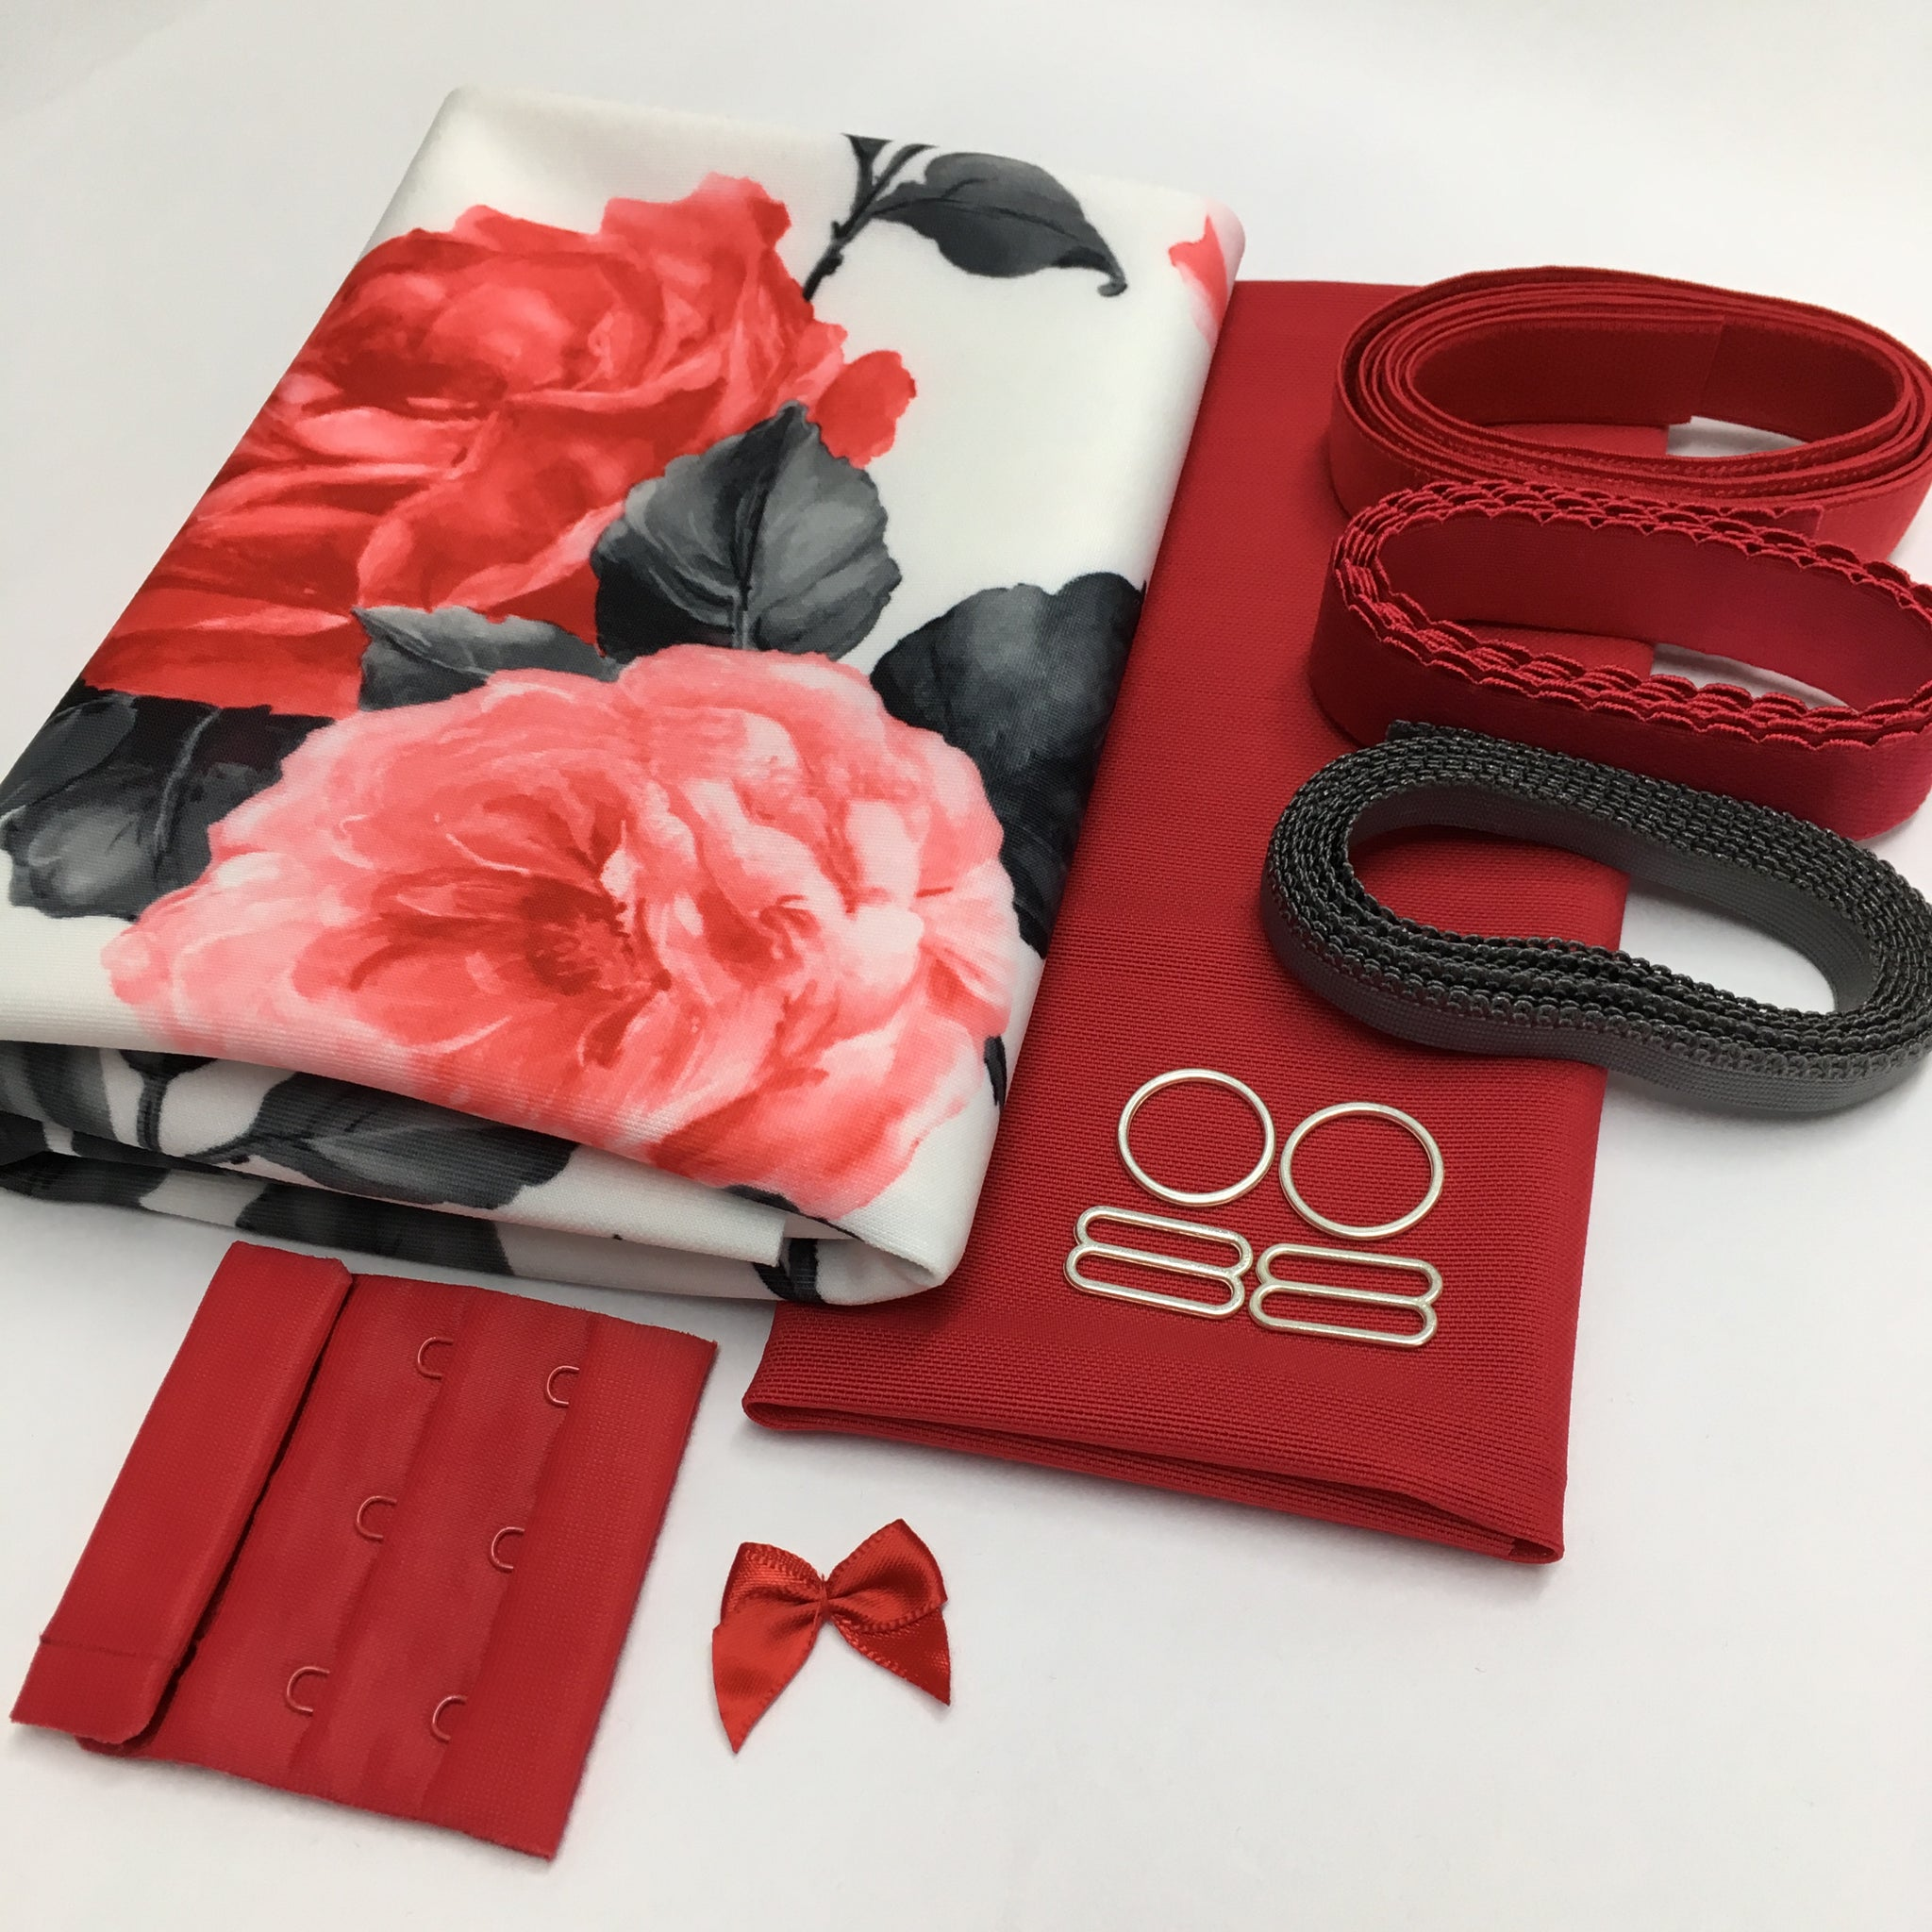 soft bra kit scuba red rose